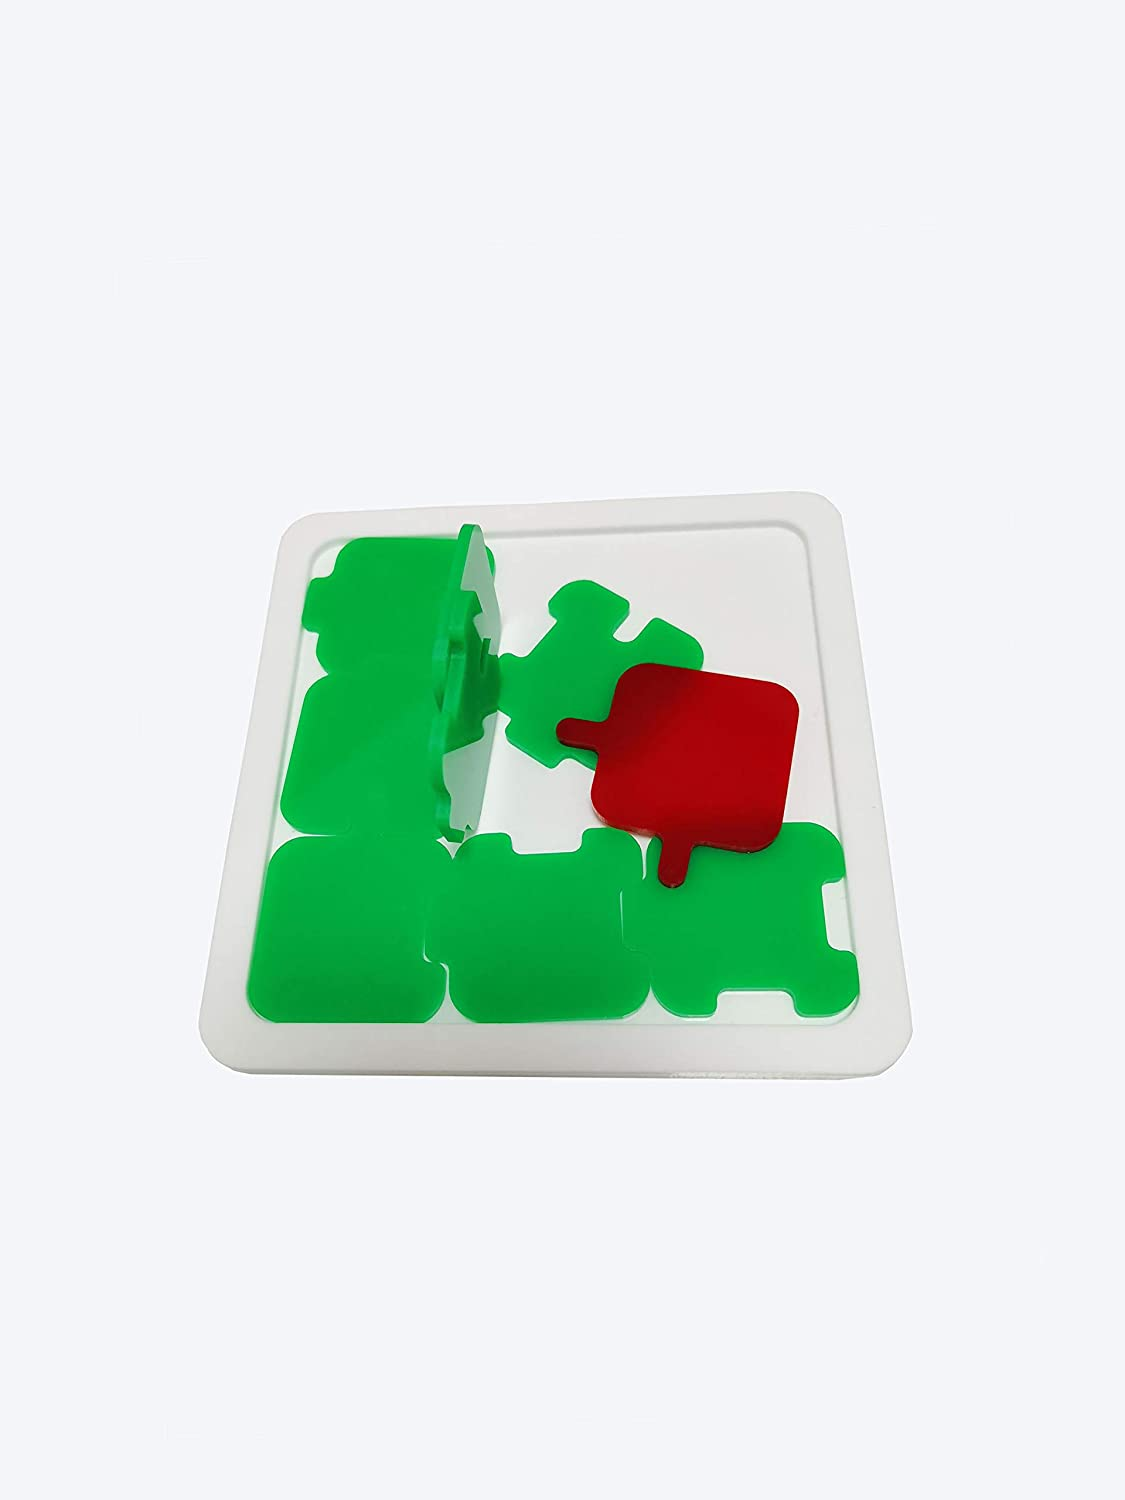 Sonpic Jigsaw Puzzles, Nosey Puzzle Acrylic 9 Pieces Puzzle Level 8- Intelligence Toy for Kids, Adults and Teenages-Apple Shape Puzzle